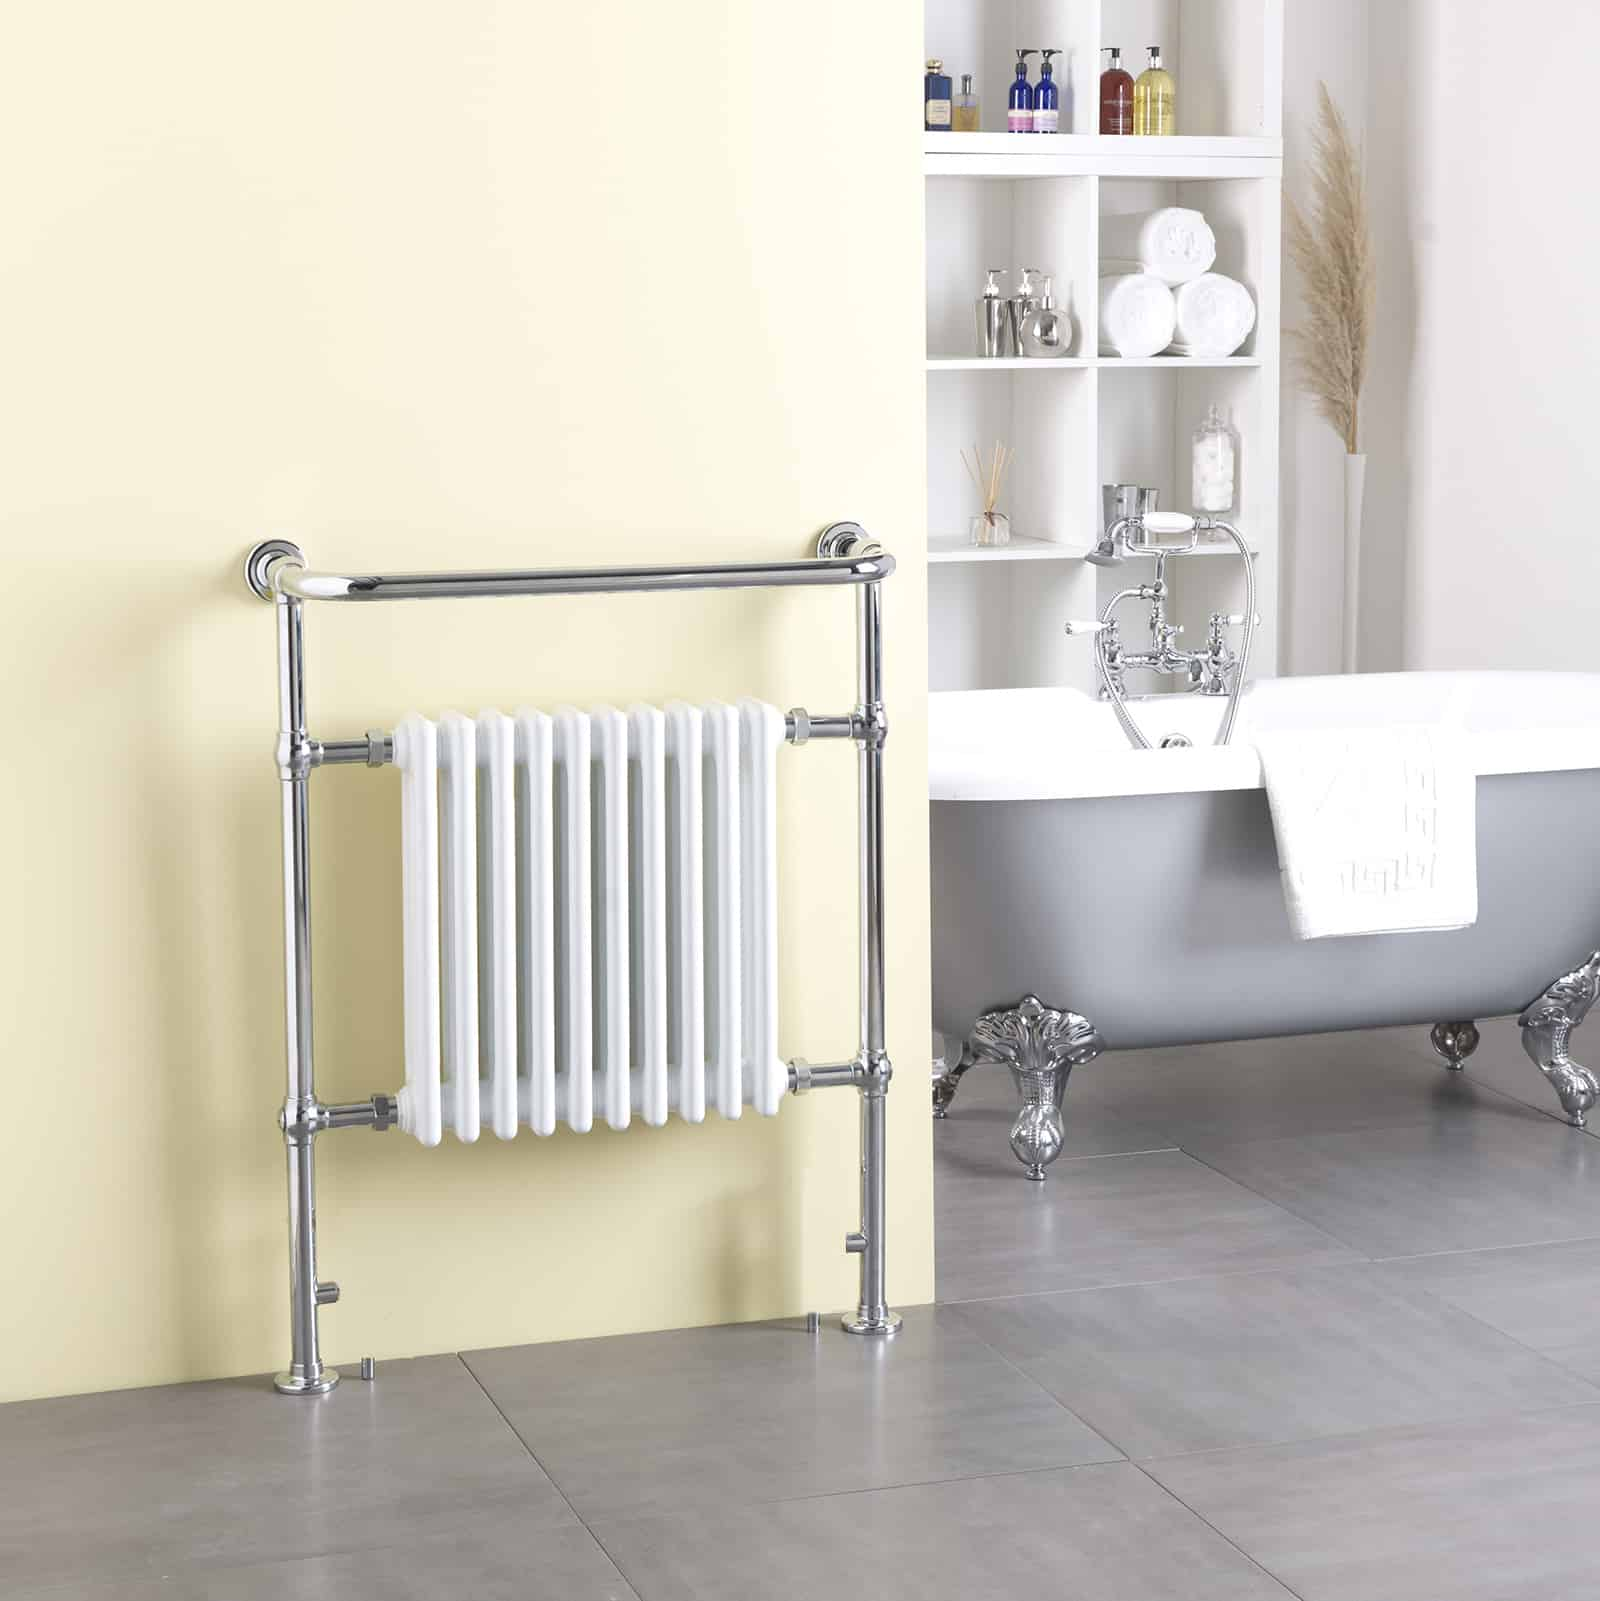 Heated Towel Rail Timer Wiring Diagram: Aura Rex Traditional Victorian Heated Towel Rail